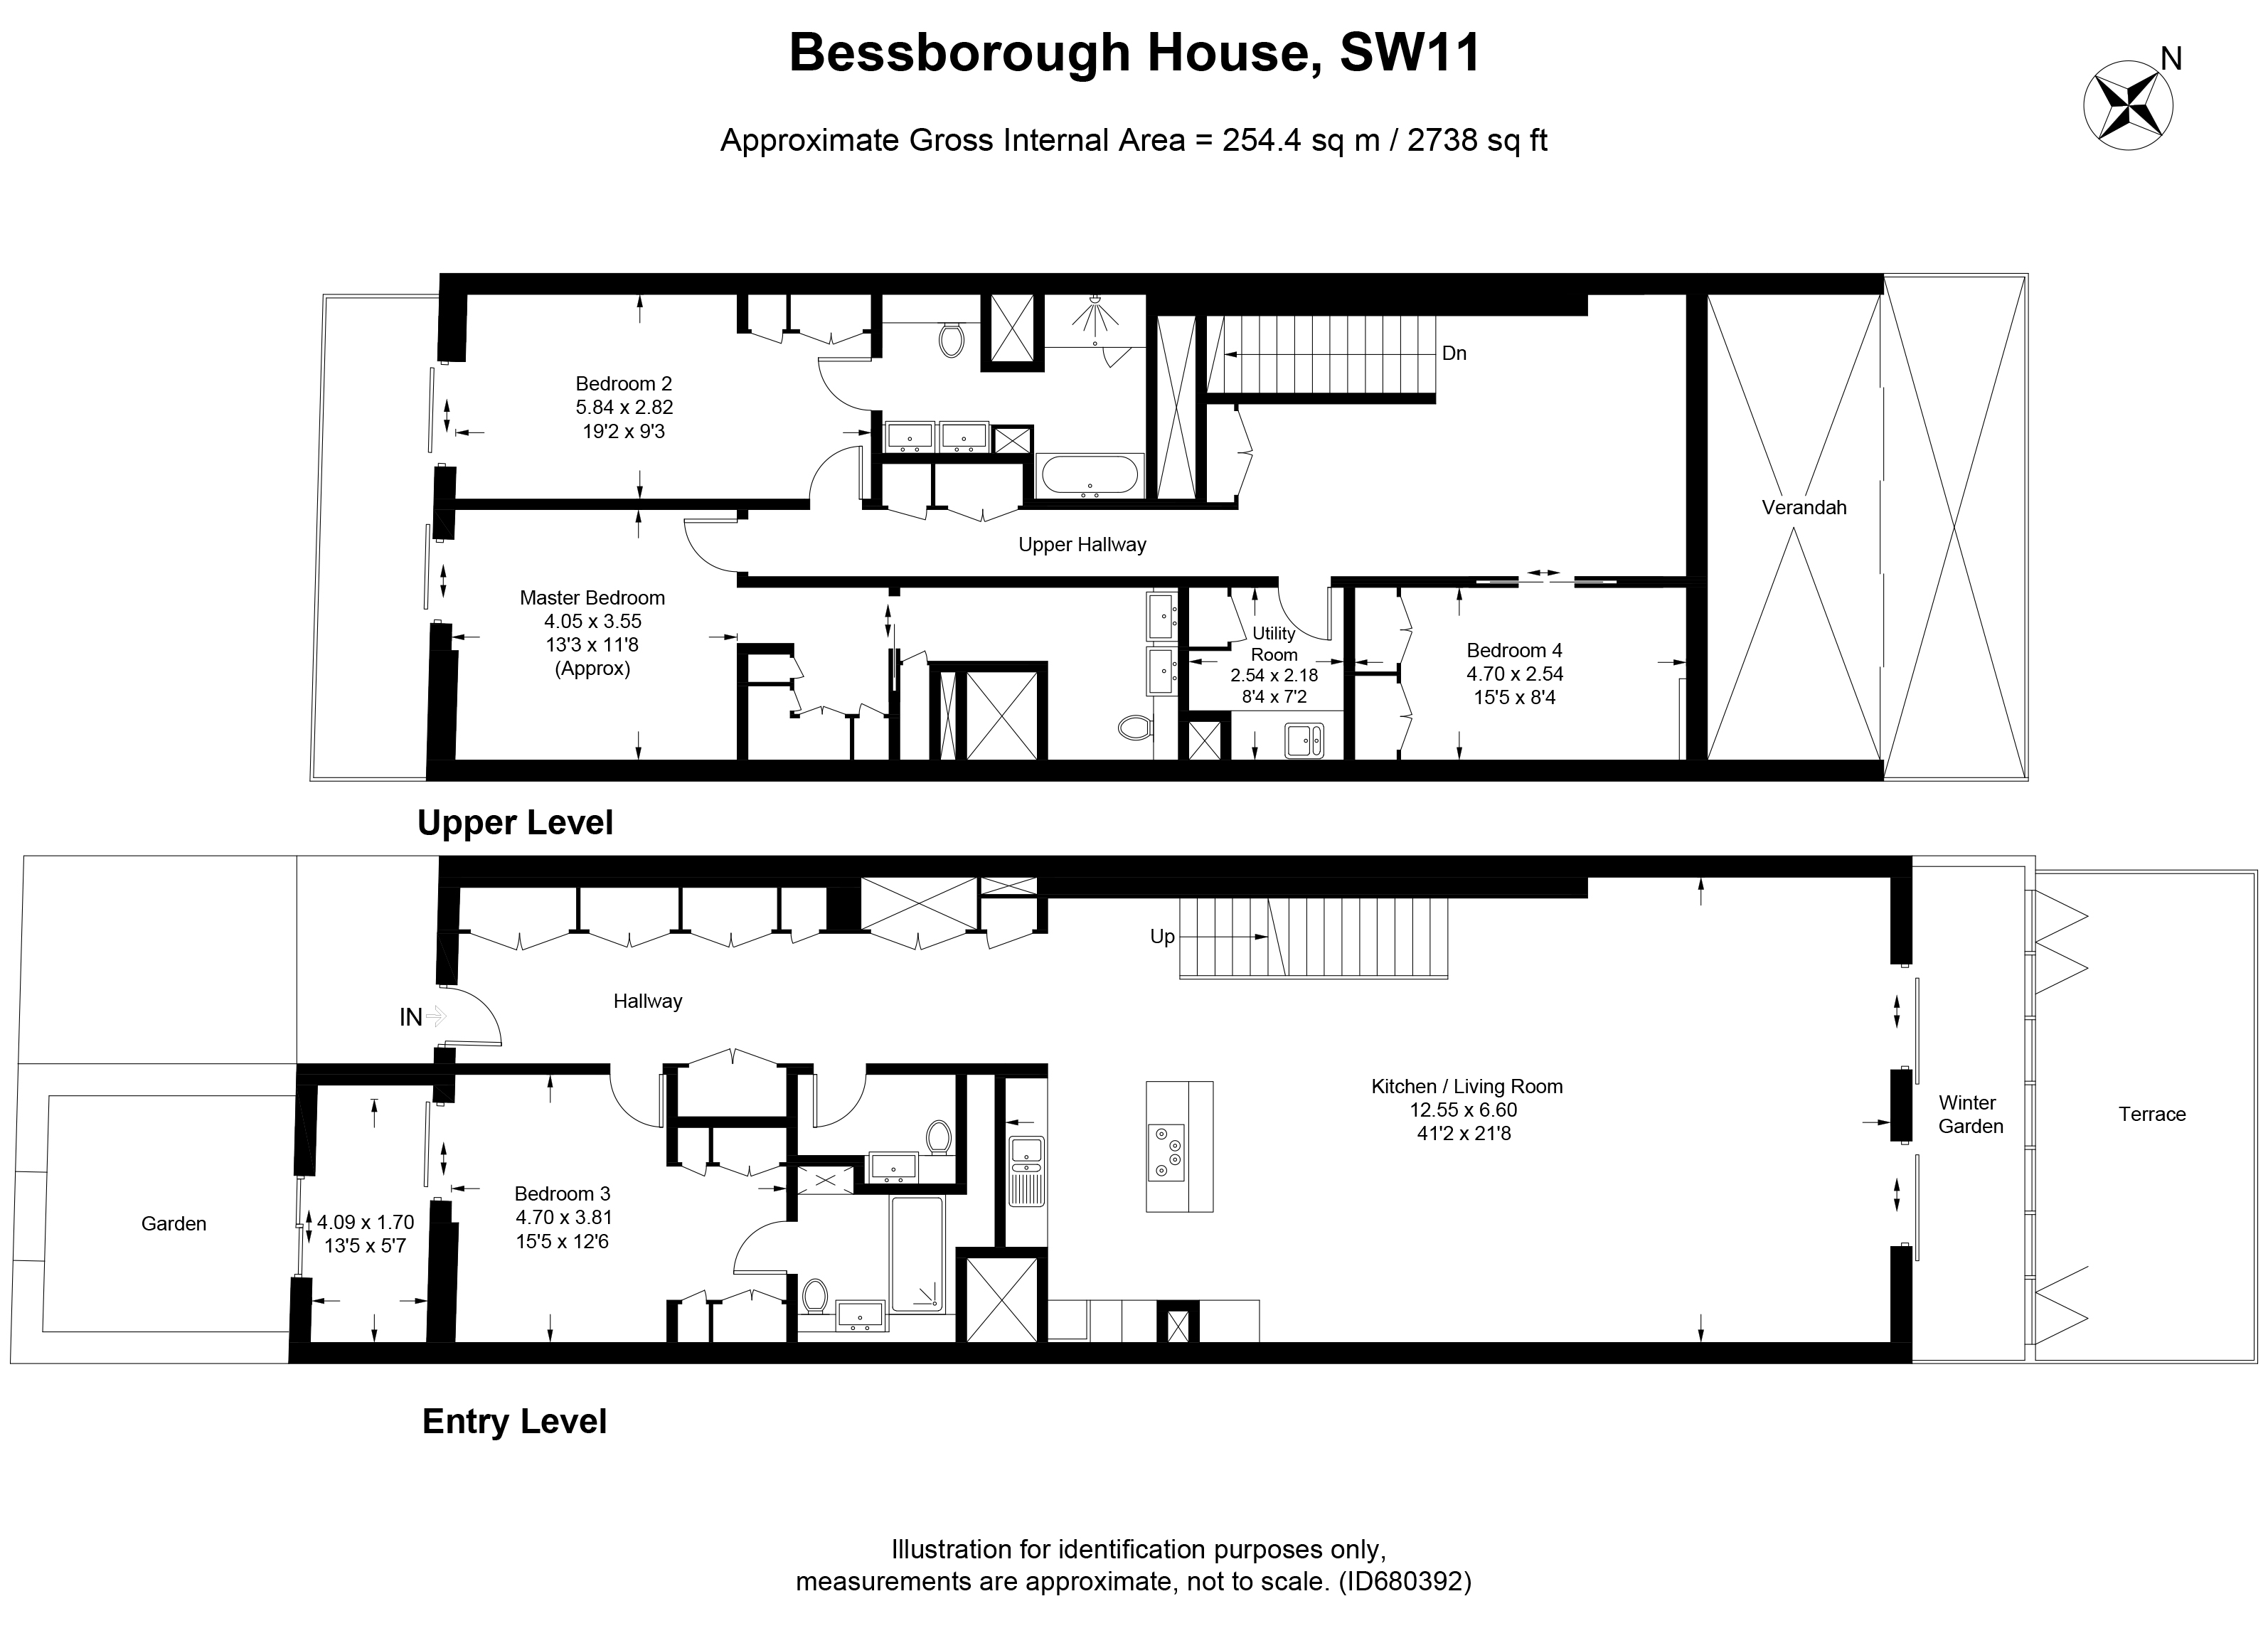 Bessborough House, Battersea Power Station, London SW11